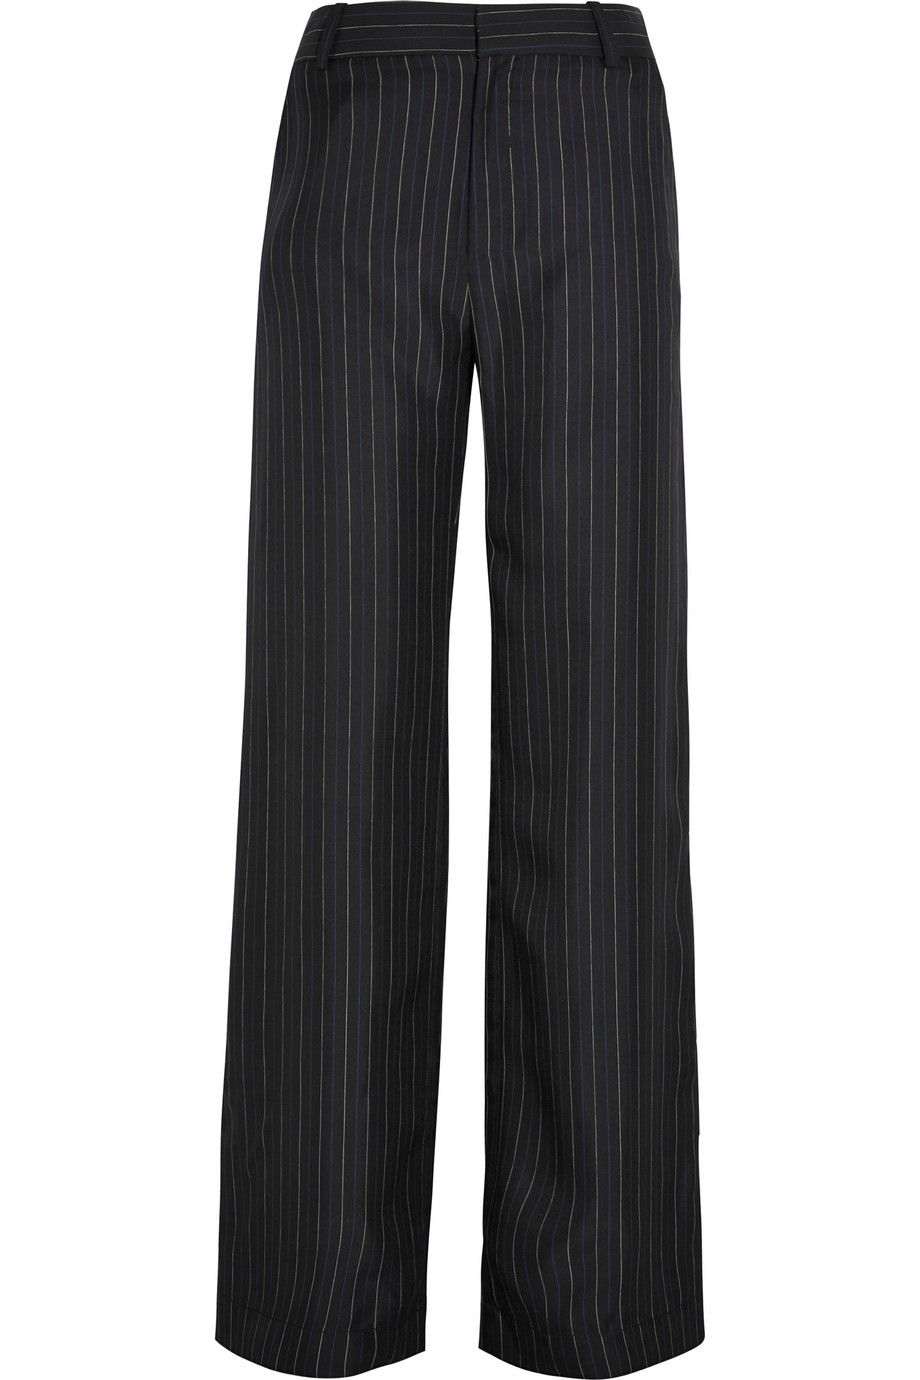 Bayamo Silk-Twill Wide-Leg Pants, Black, Women's, Size: 8